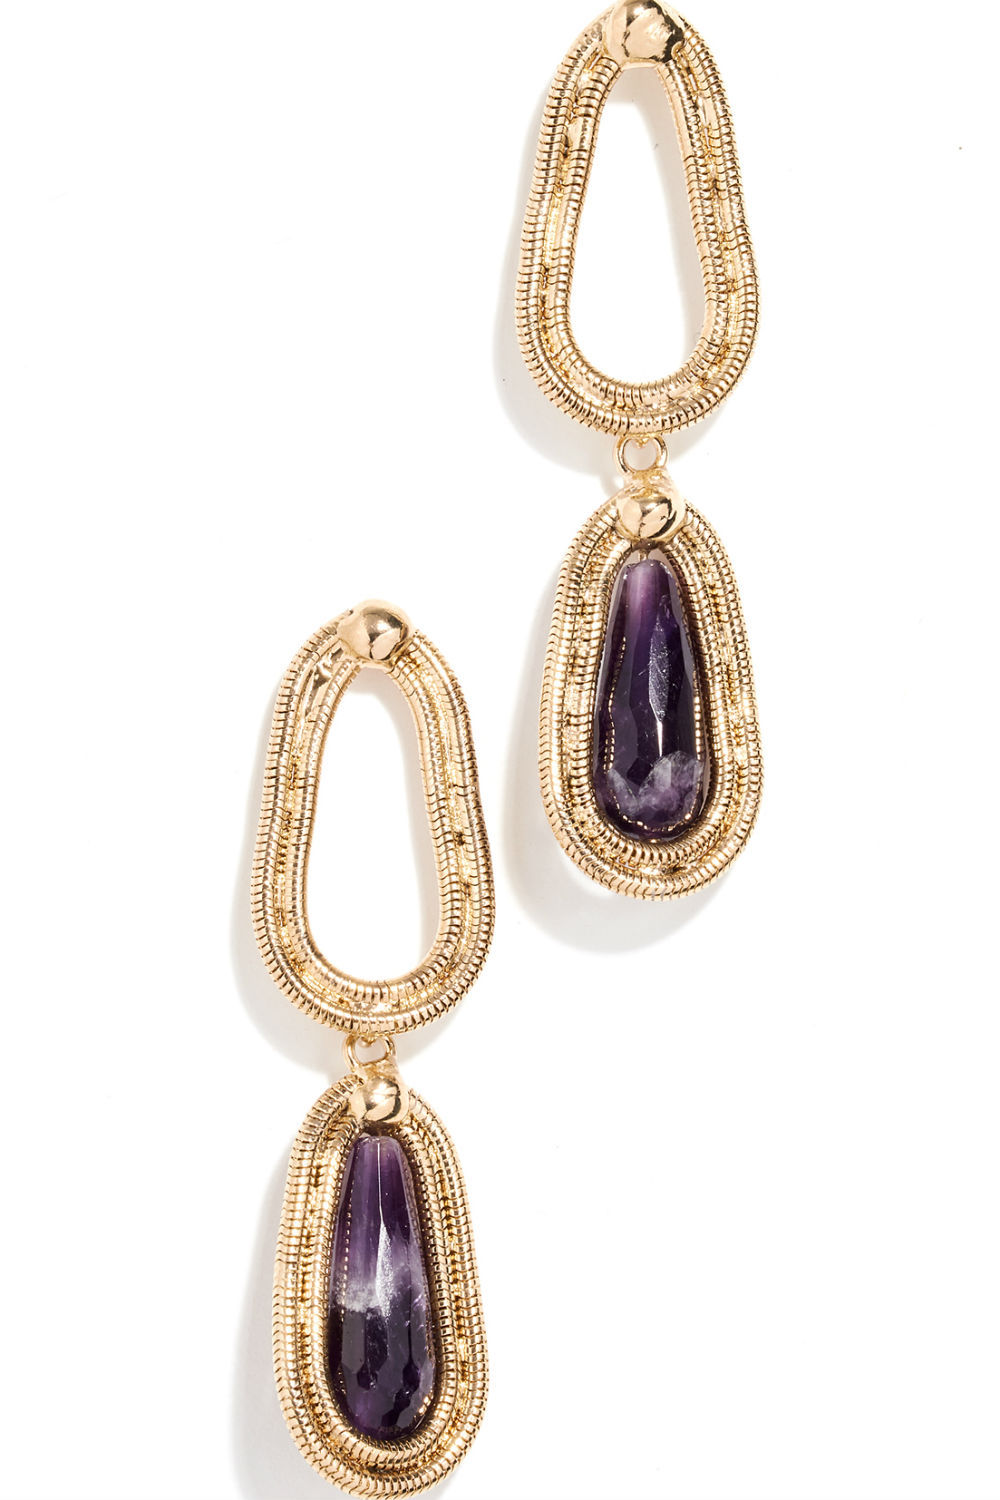 snakeshaped chain pendant earrings for women statement earrings drop earrings jewelry in Drop Earrings from Jewelry Accessories